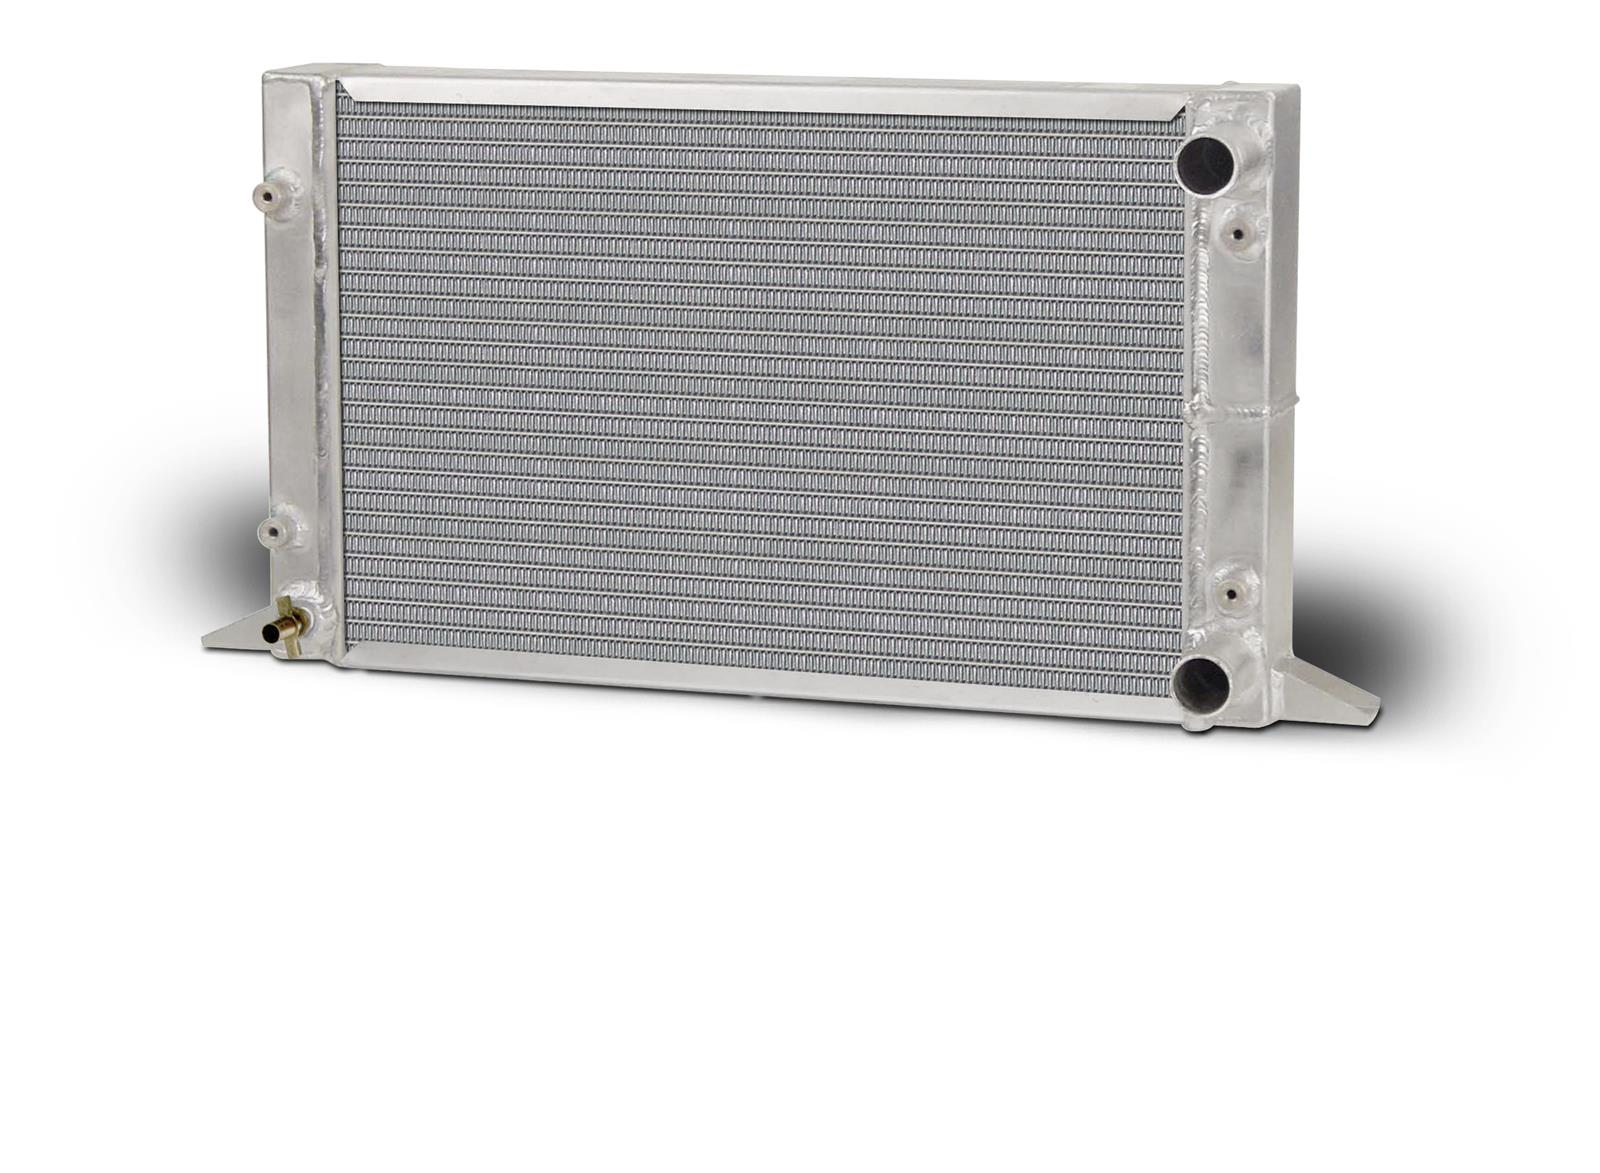 AFCO Racing Scirocco-Style Drag Racing Radiators 80107N - Free Shipping on  Orders Over $49 at Summit Racing